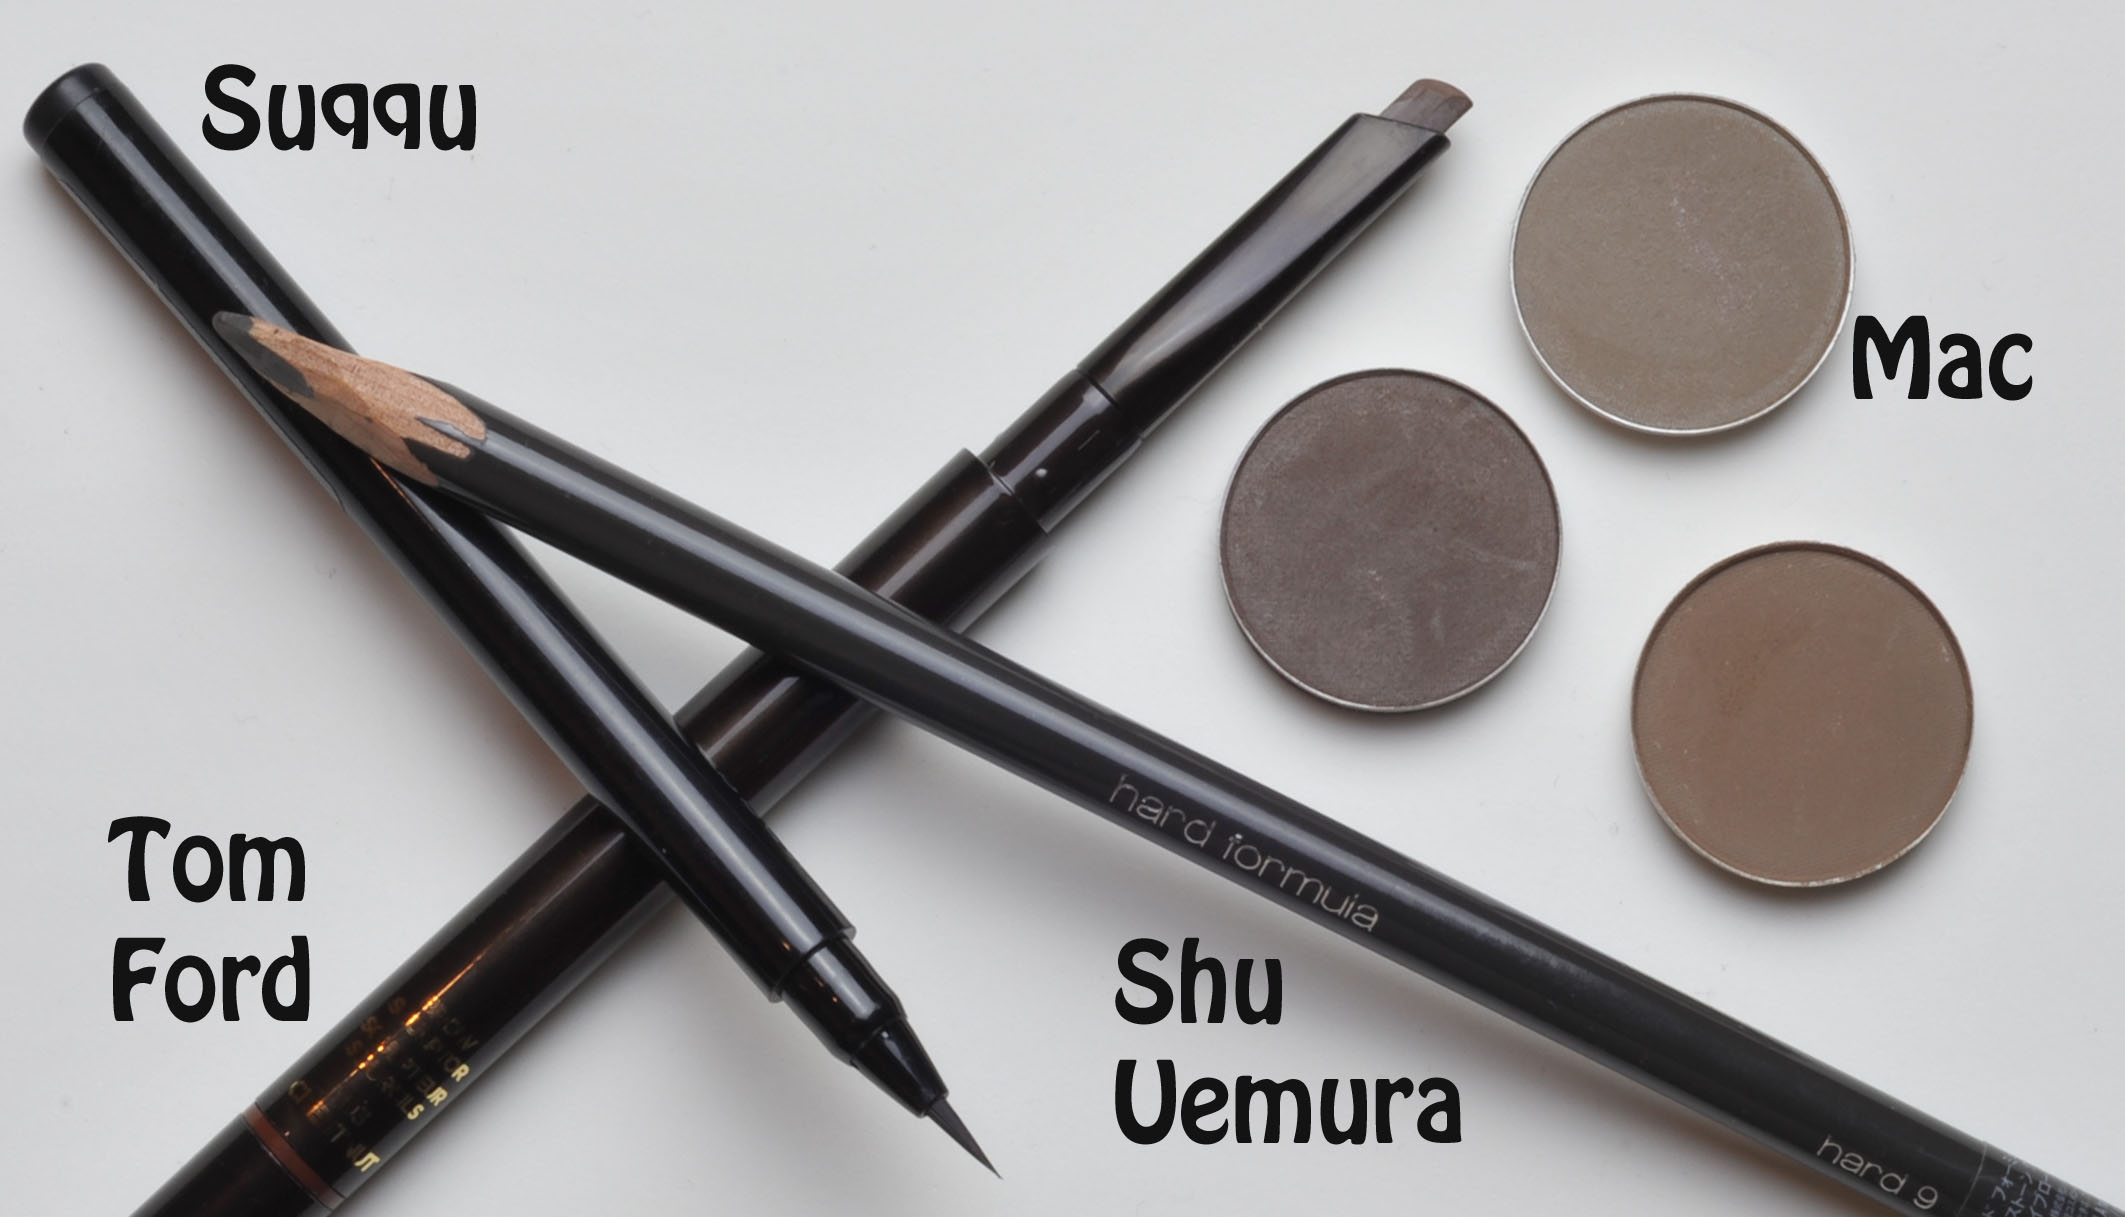 Eyebrows Focus On Tom Ford Suqqu Shu Uemura Sweet Makeup